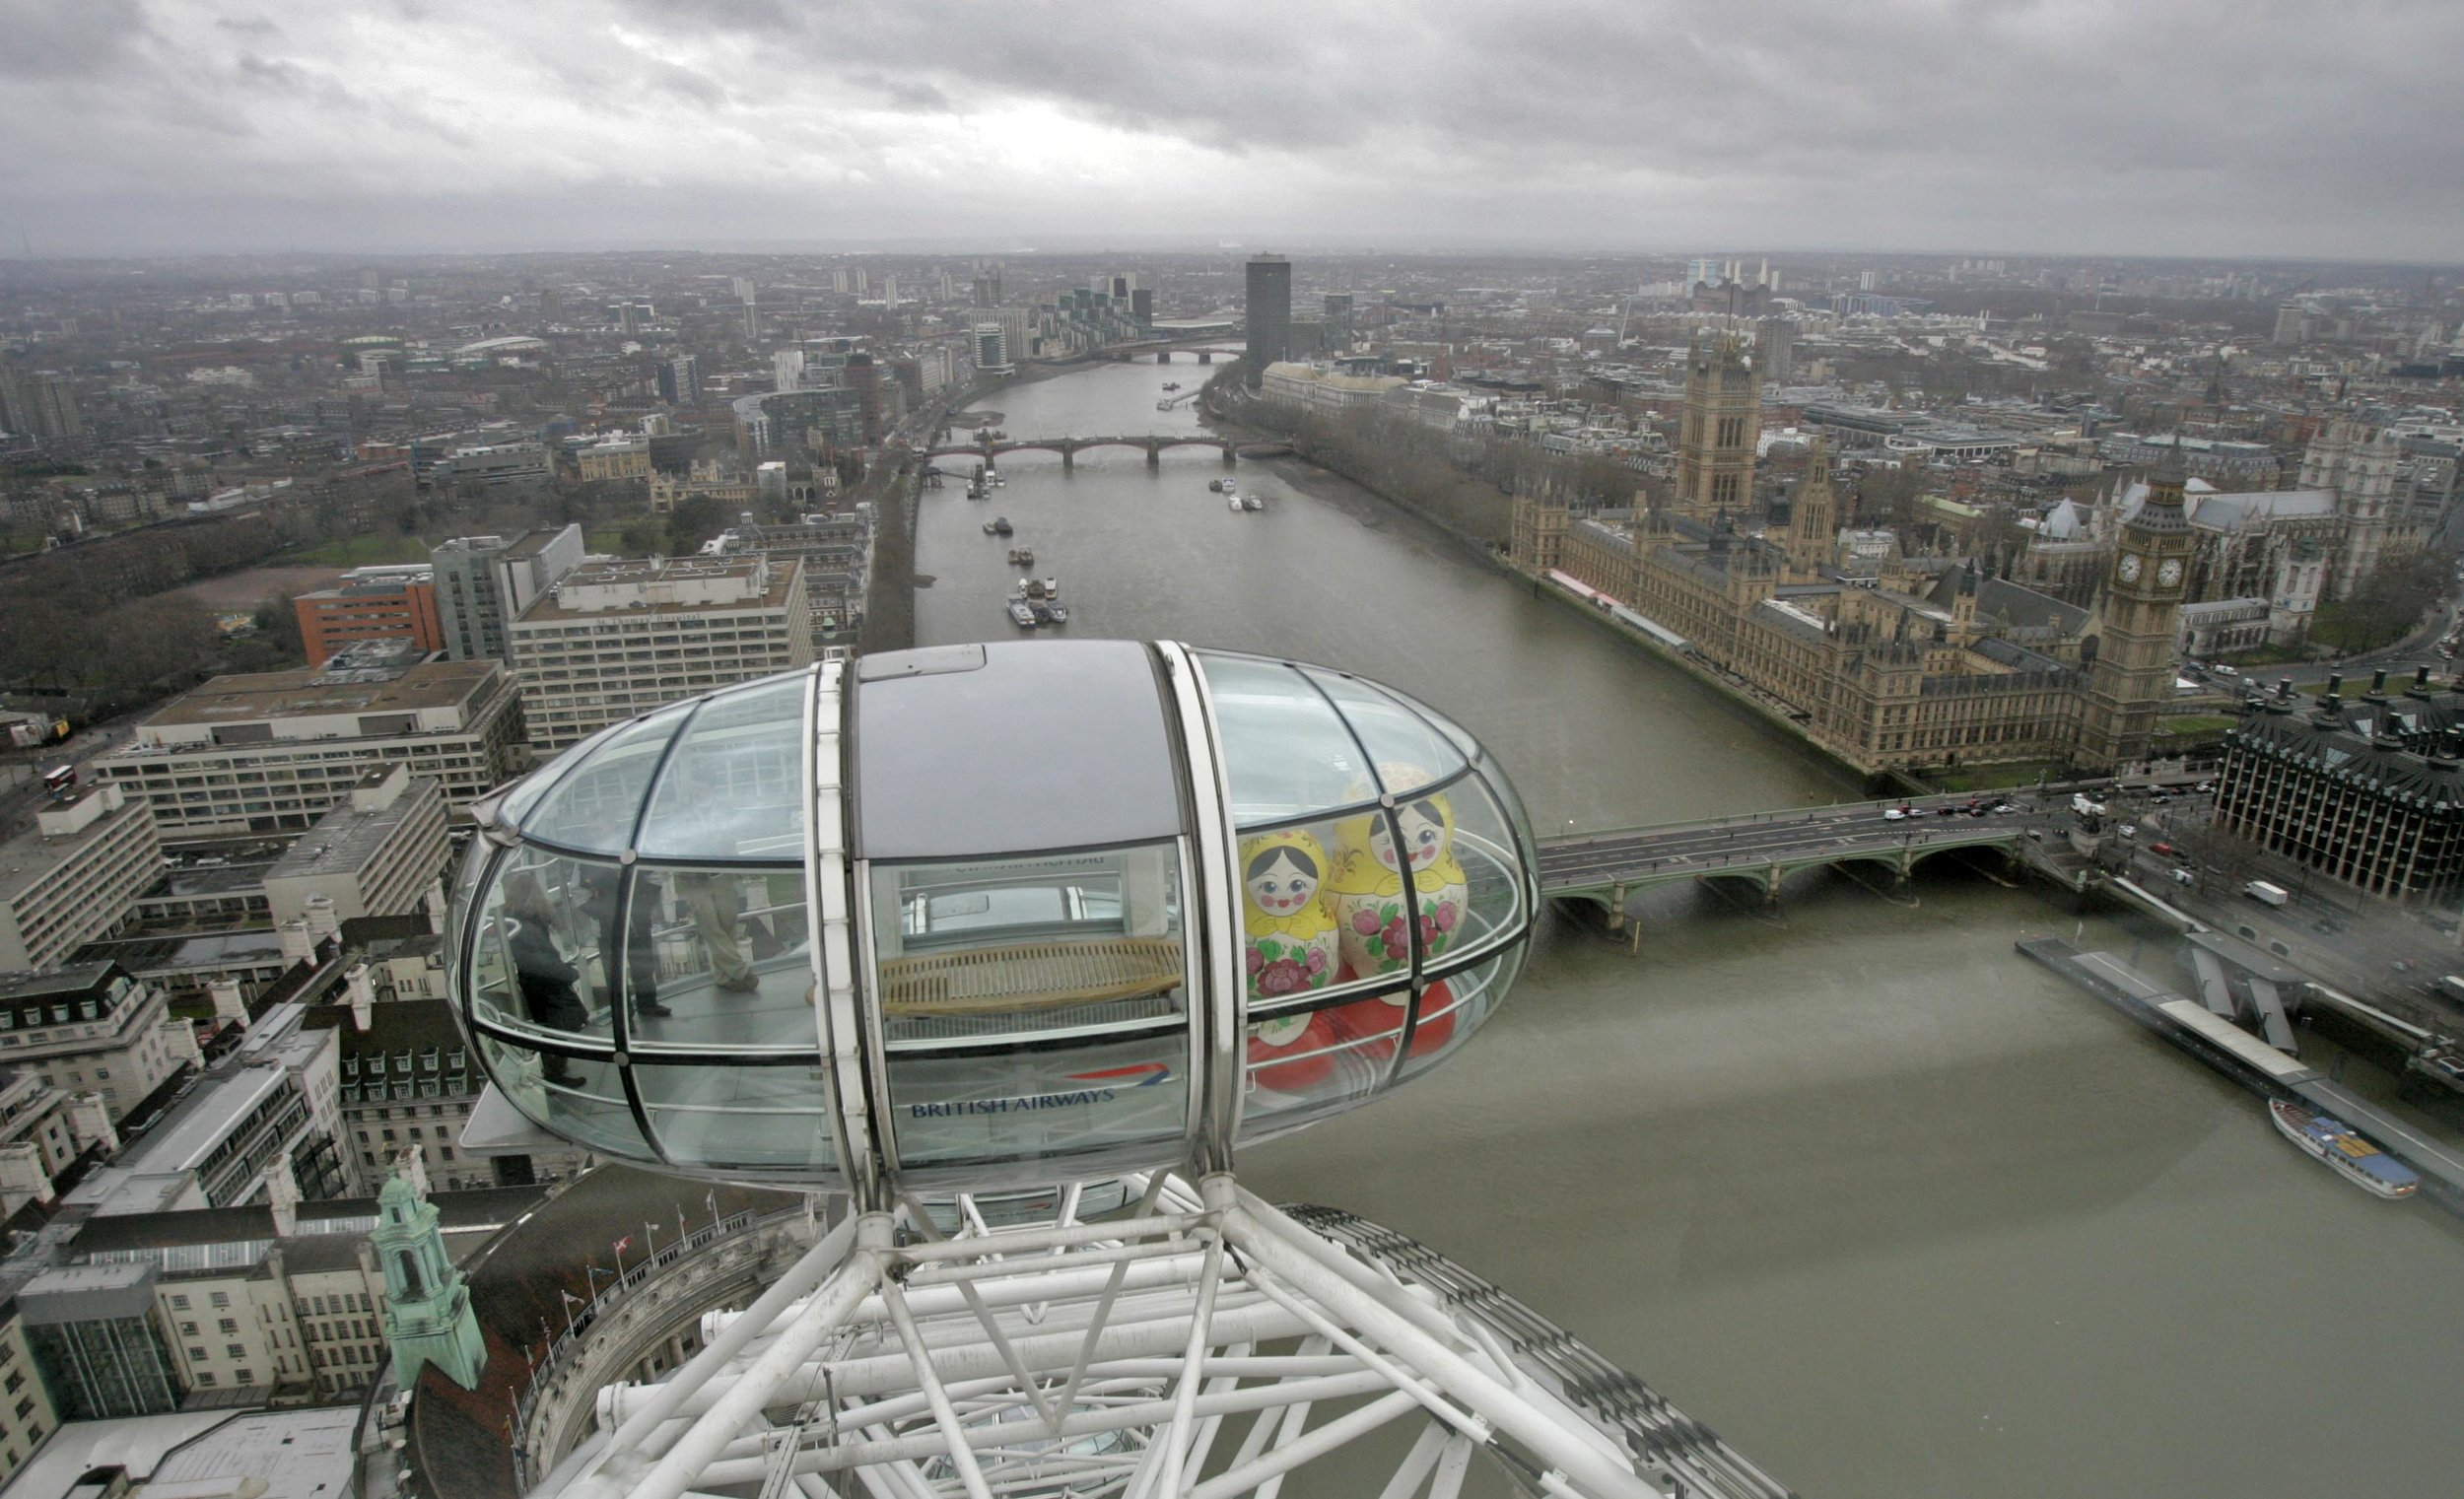 Dolls in London Eye pod with parliament and river.jpg